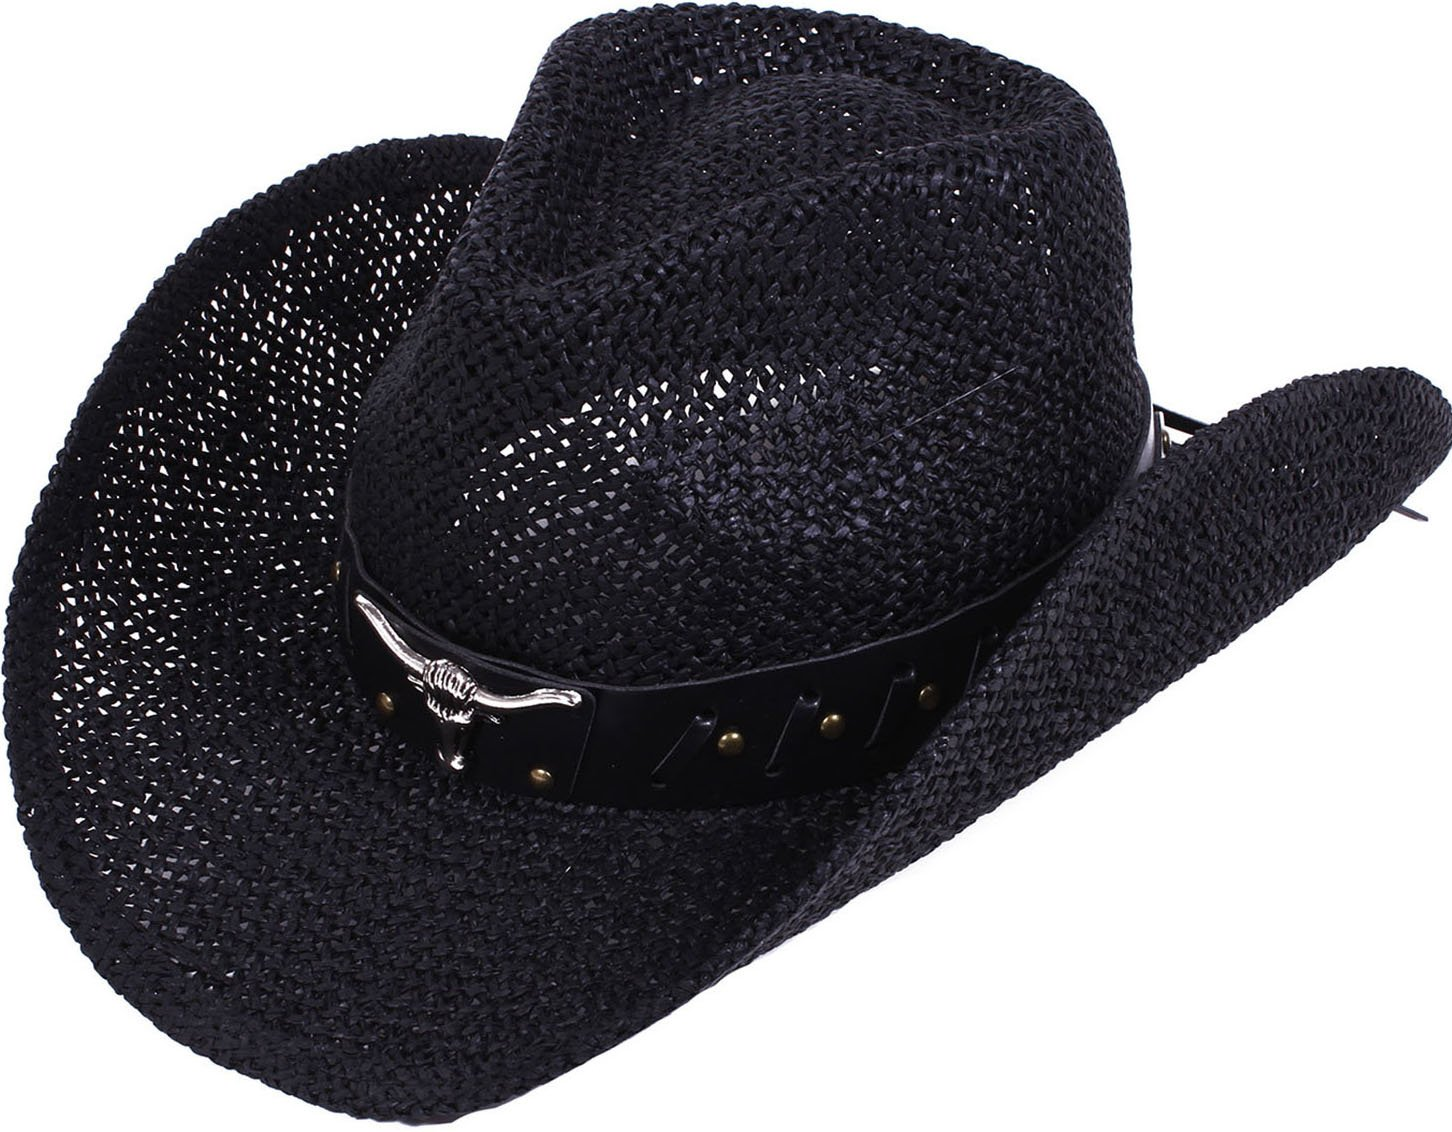 YoungLove Men and Women Straw Cowboy Hat with Decor,Black_Bull